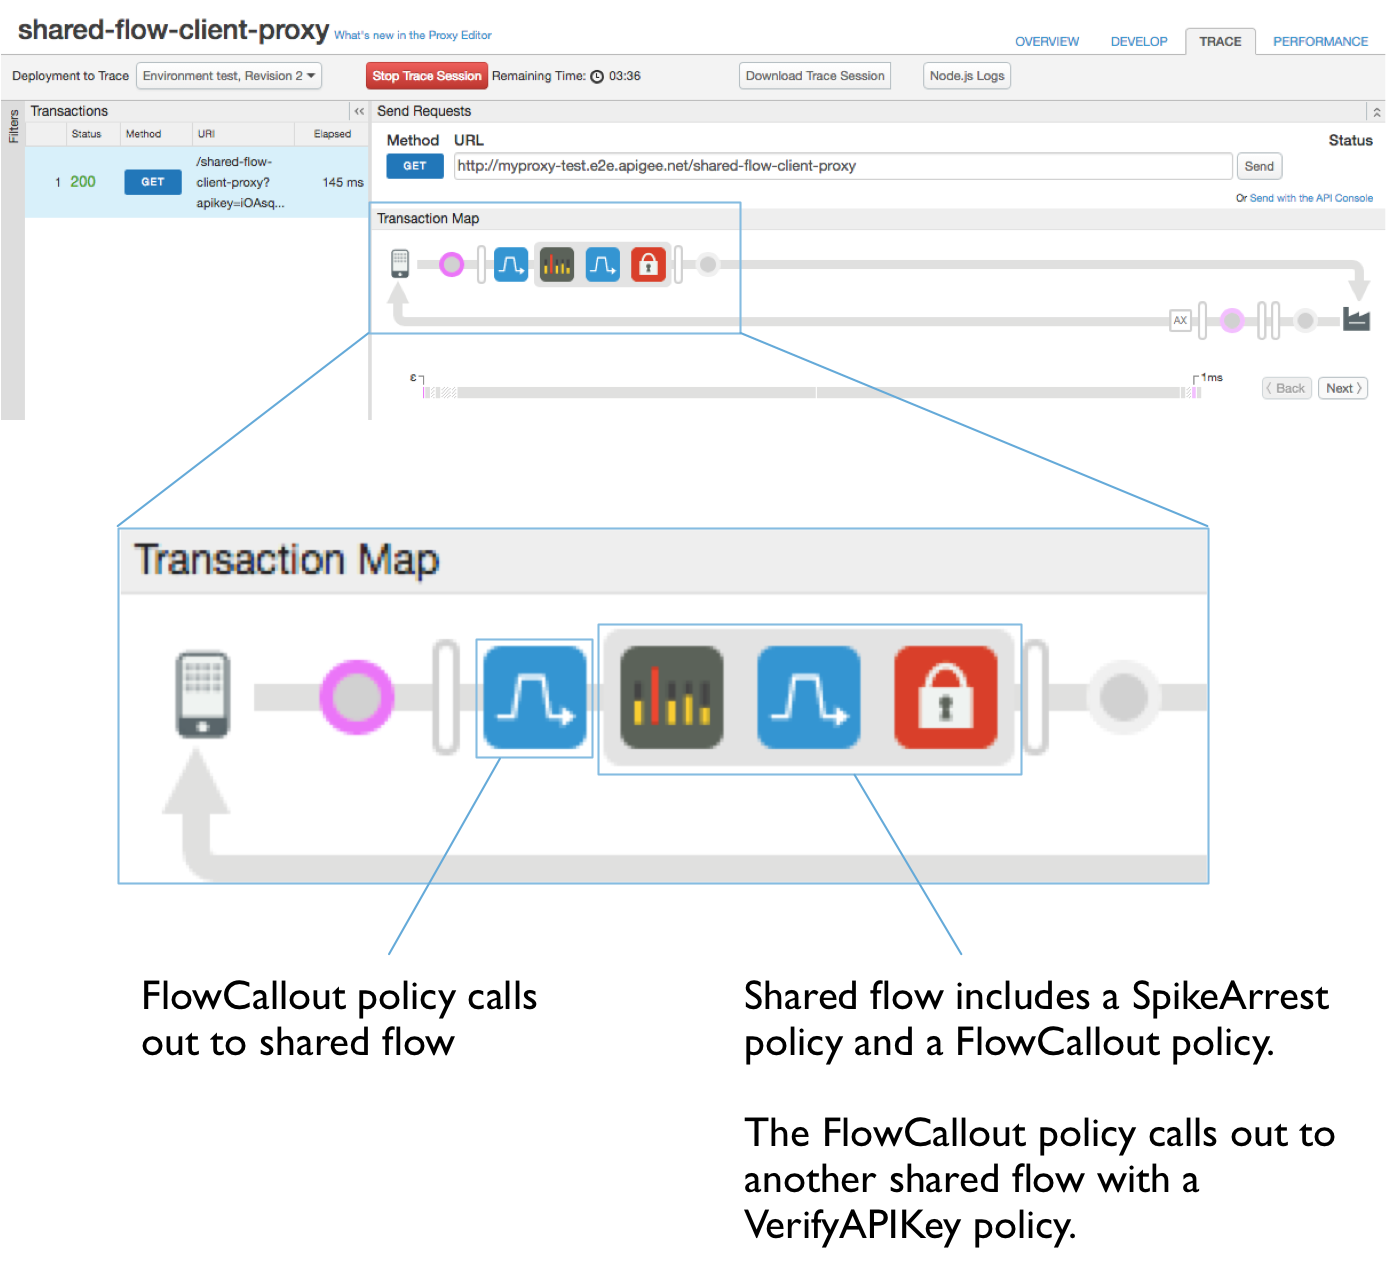 Transaction map.  Callout text:              a) FlowCallout policy calls out to shared flow.             b) Shared flow includes a SpikeArrest policy and a FlowCallout policy.              The FlowCallout policy calls out to another shared flow with a VerifyAPIKey policy.